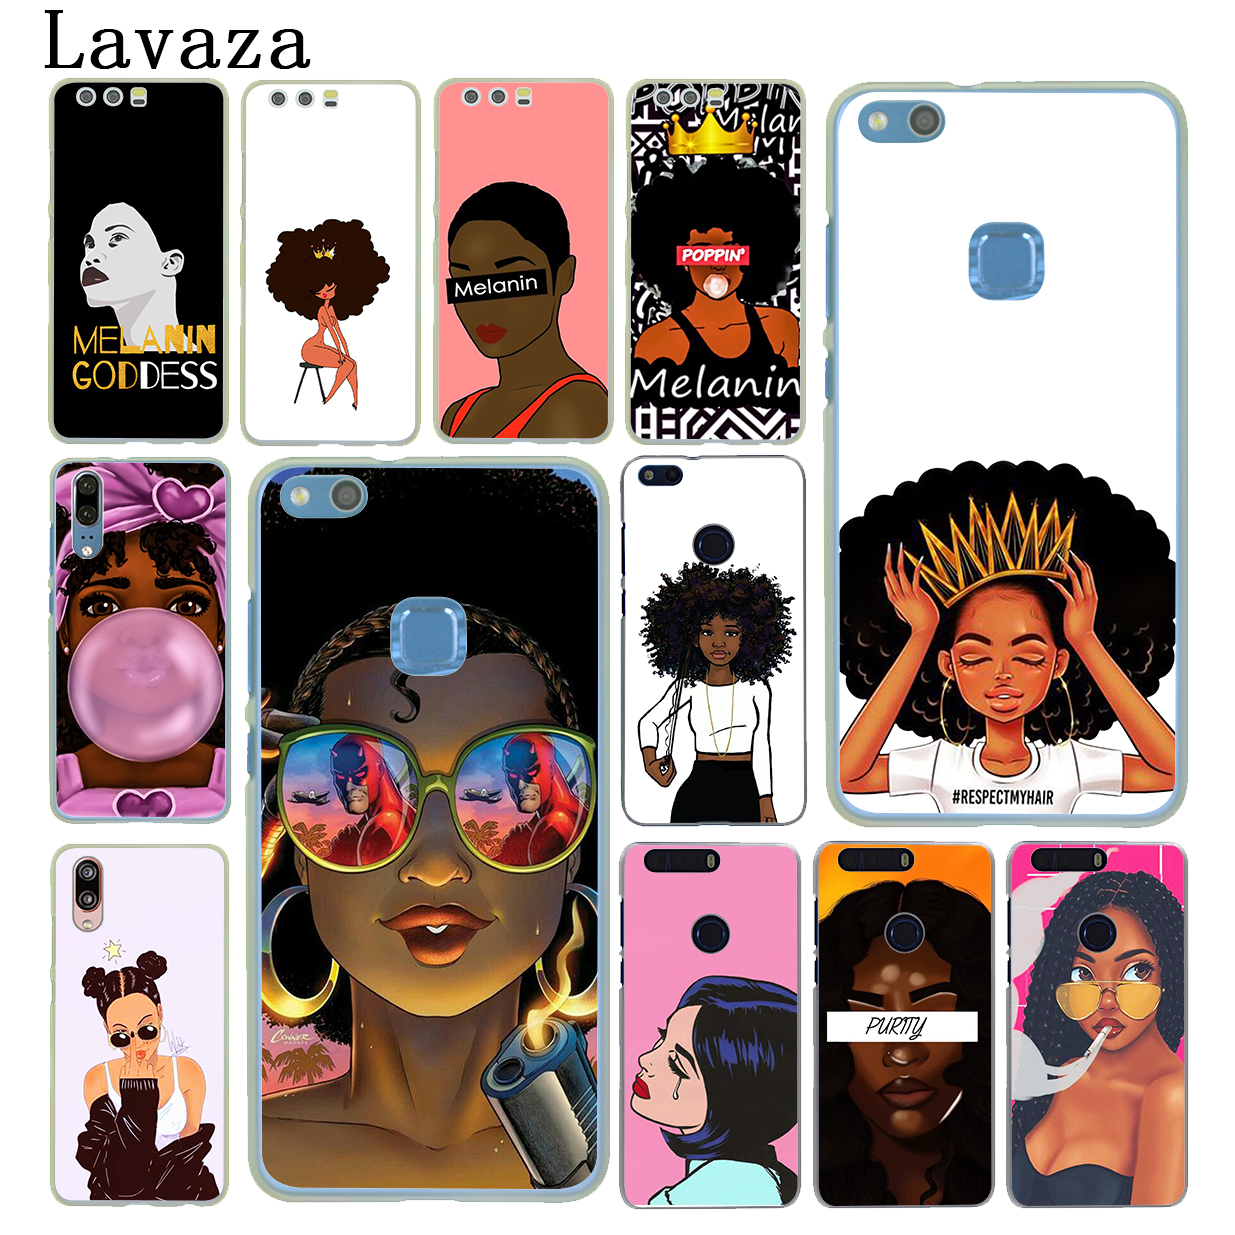 Mougol Cose Cover For Huawei Honor 4c 5x 6 6c 6x 7 7c 7a Pro 7x 8 8x 9 Lite 10 African Print Beauty Afro Puffs Black Girl Cellphones & Telecommunications Phone Bags & Cases